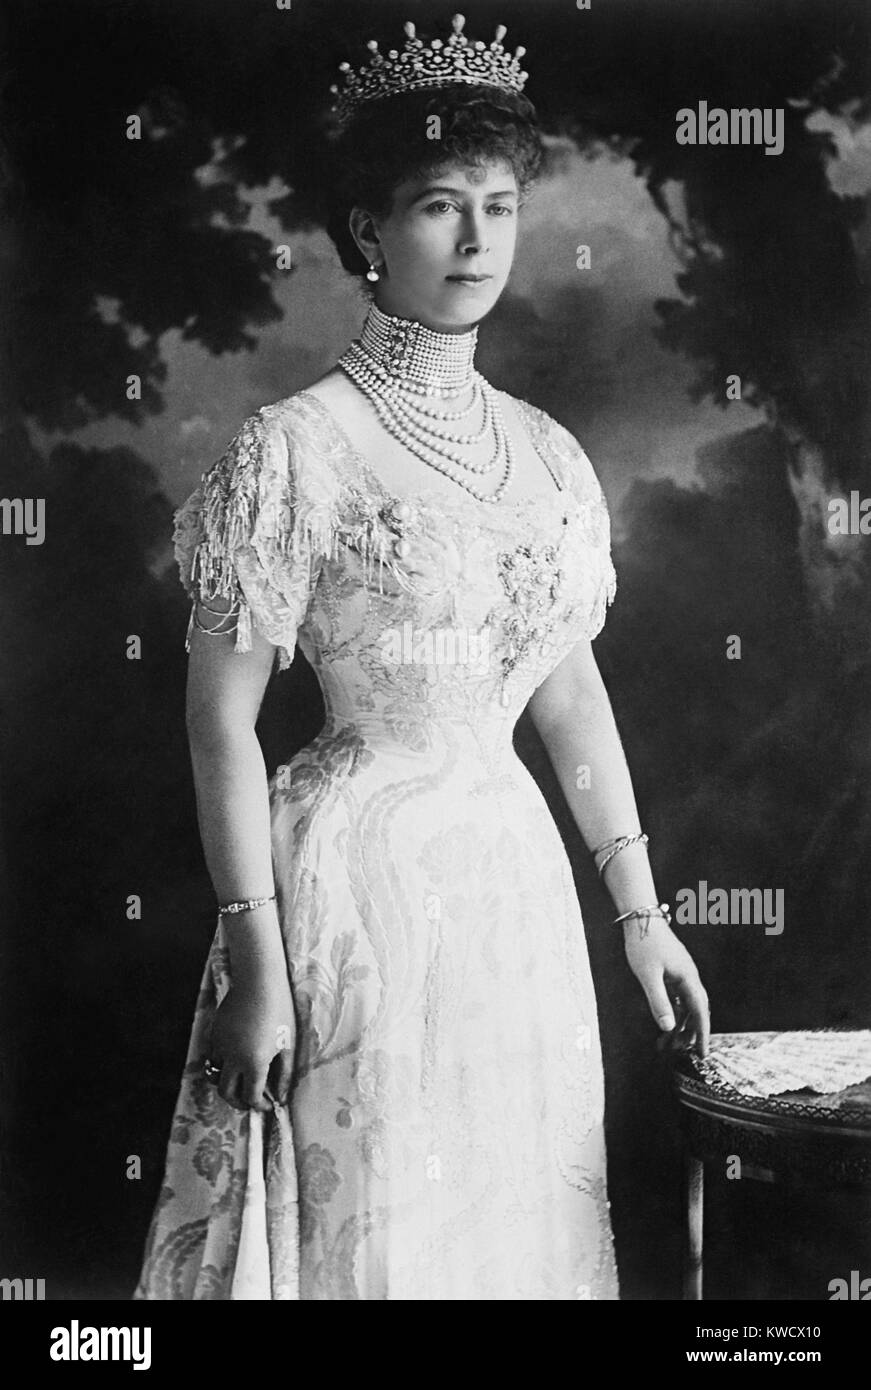 Queen Mary Of Teck Consort Of British King George Vi In 1914 At